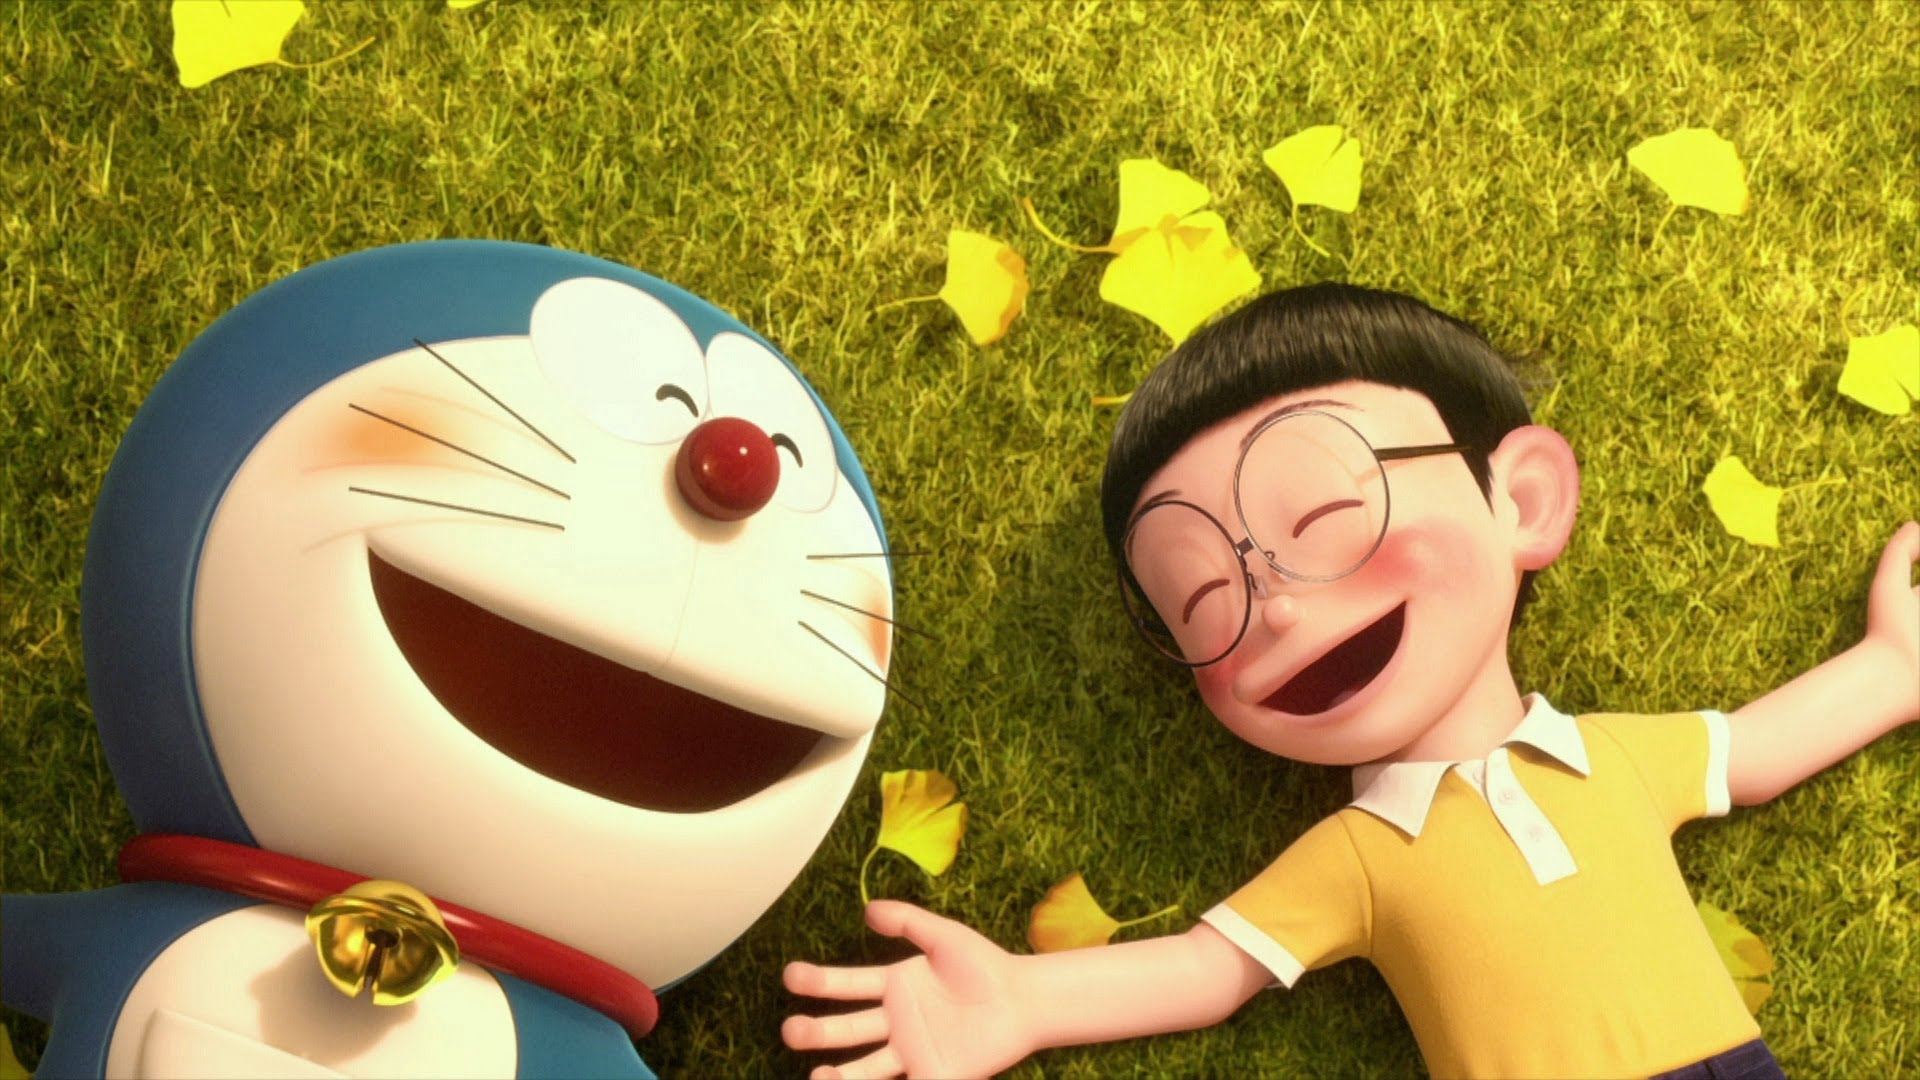 Stand By Me Doraemon 2 CG: Trailer And More Revelations - TheDeadToons